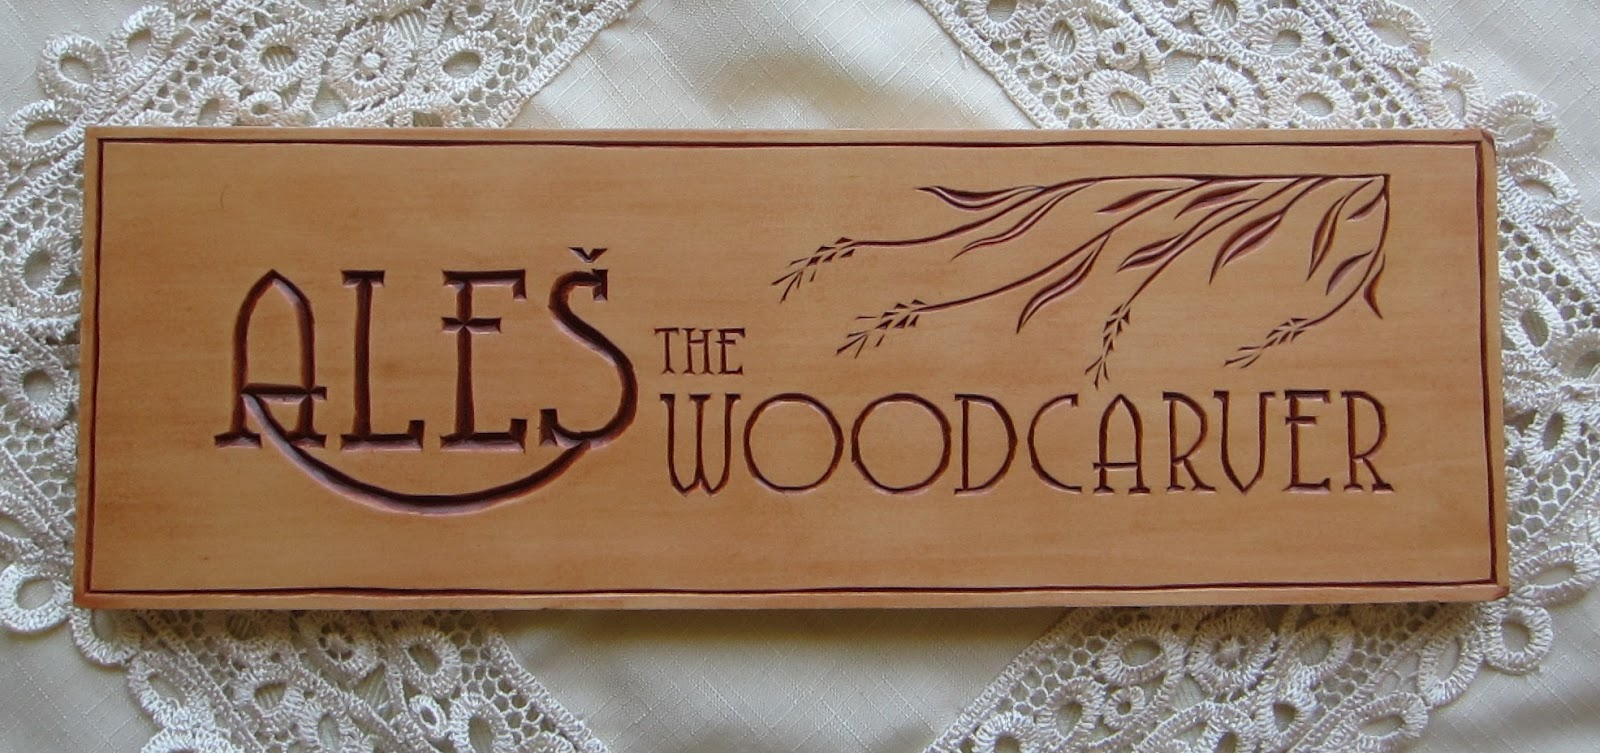 Ales the woodcarver chip carved banner